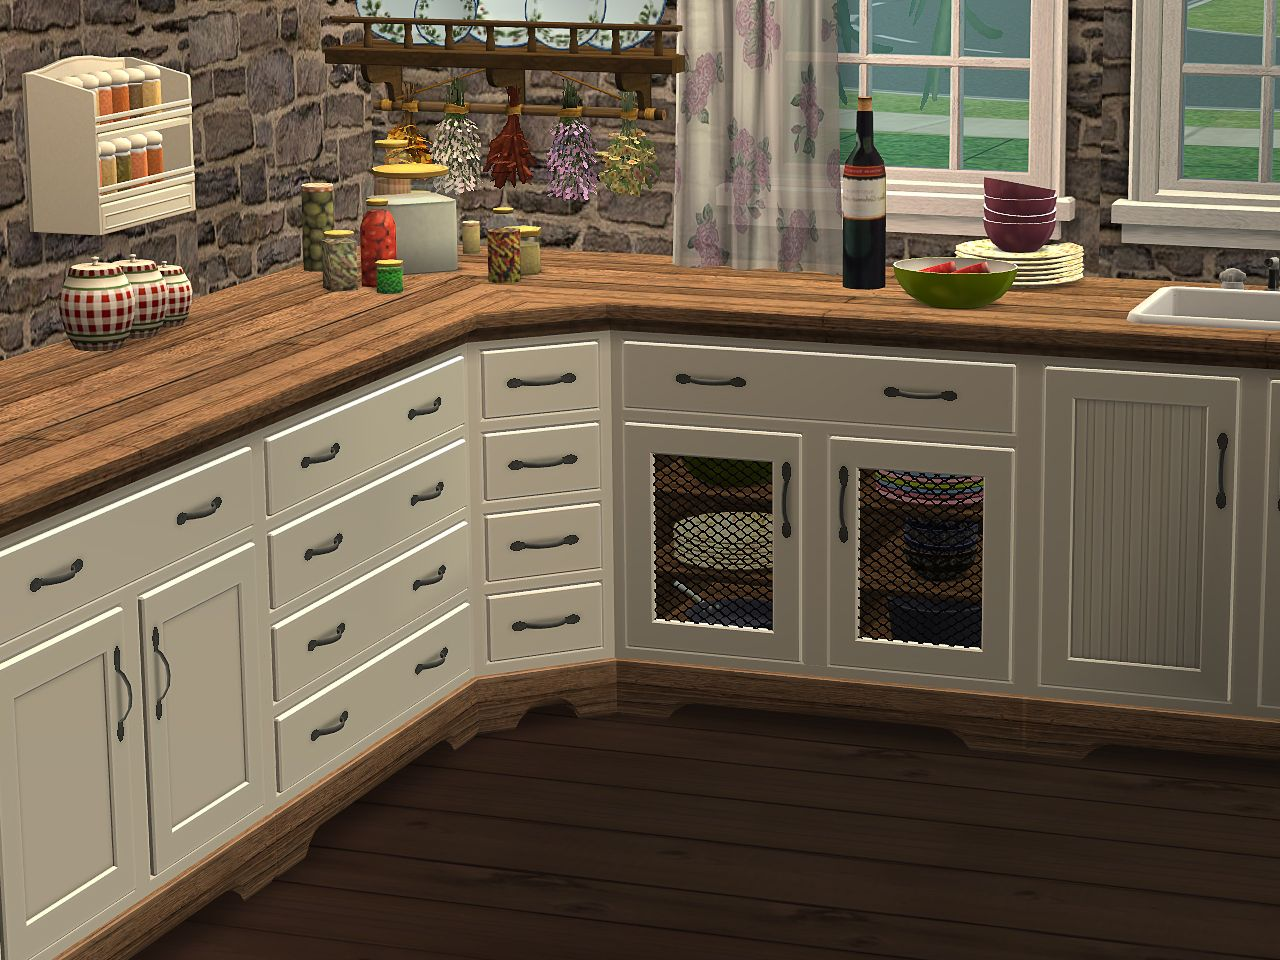 Downloads at SIMbiosys | Country kitchen, Kitchen cabinets ...